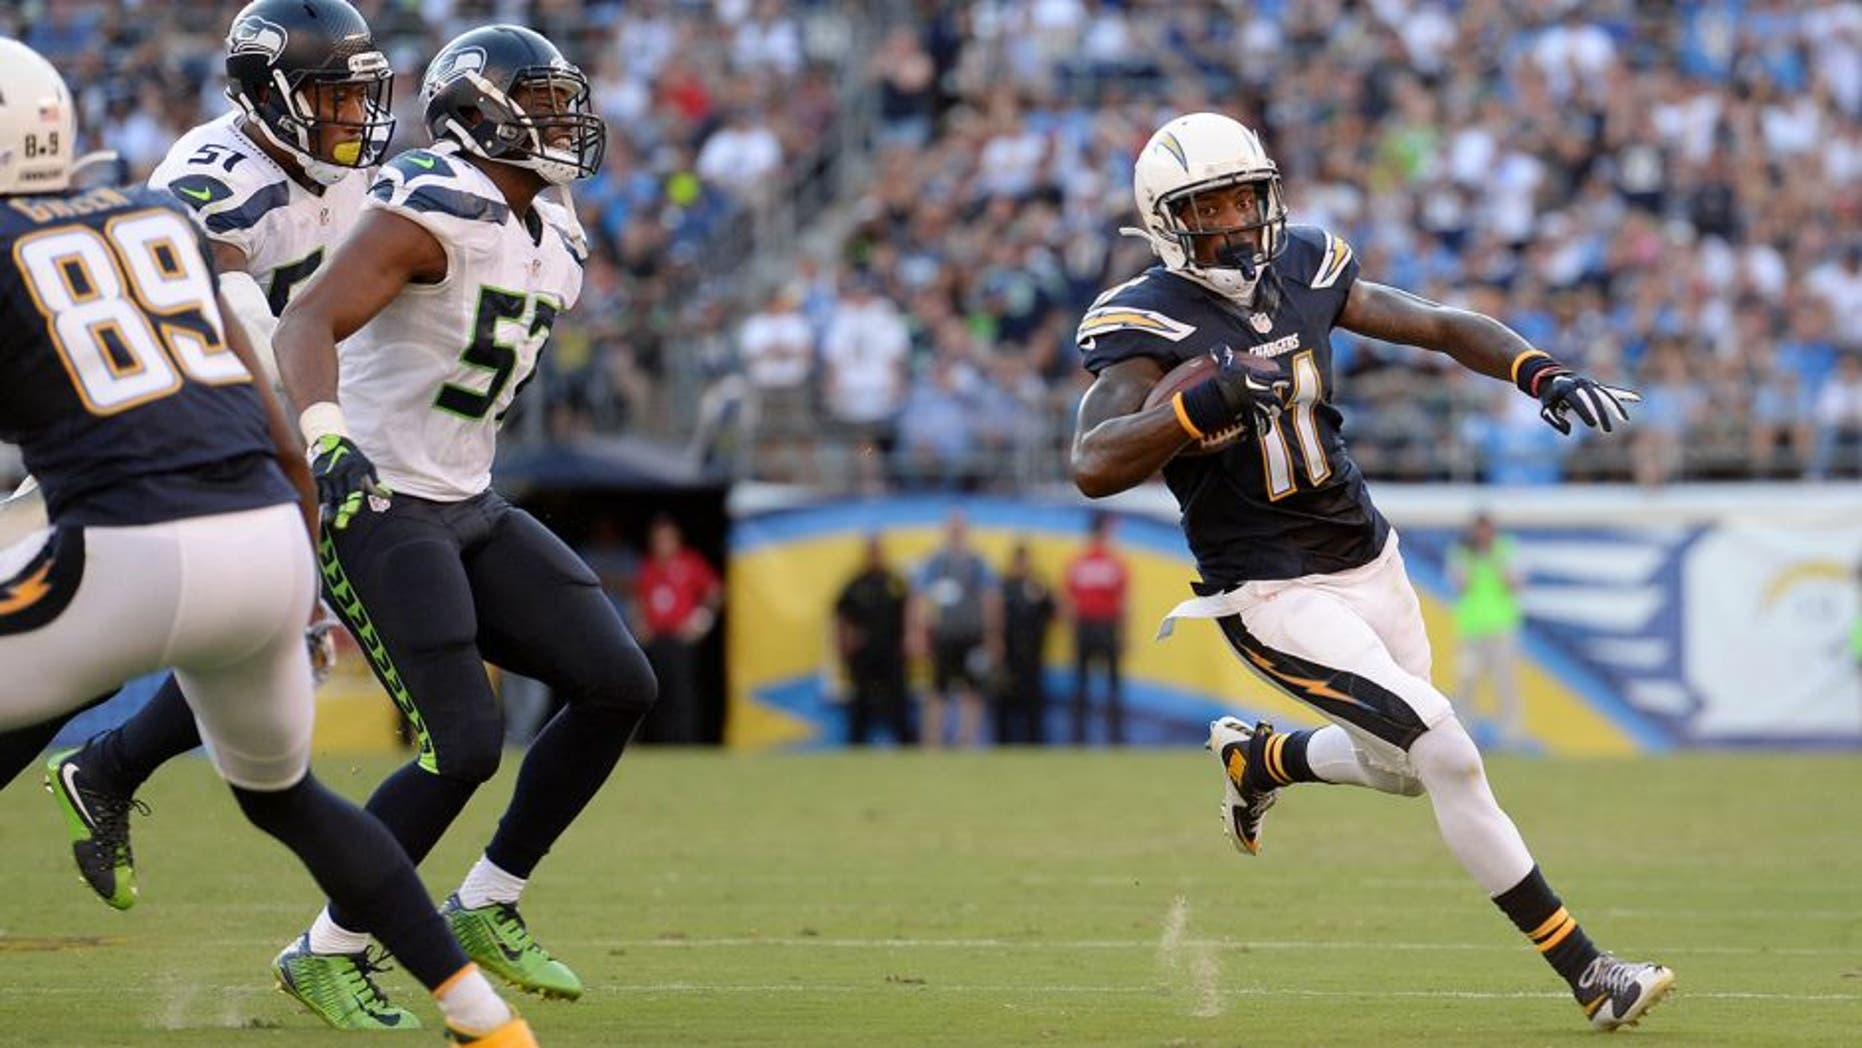 Aug 29, 2015; San Diego, CA, USA; San Diego Chargers wide receiver Steve Johnson (11) runs after making a catch during the second quarter against the Seattle Seahawks at Qualcomm Stadium. Mandatory Credit: Jake Roth-USA TODAY Sports